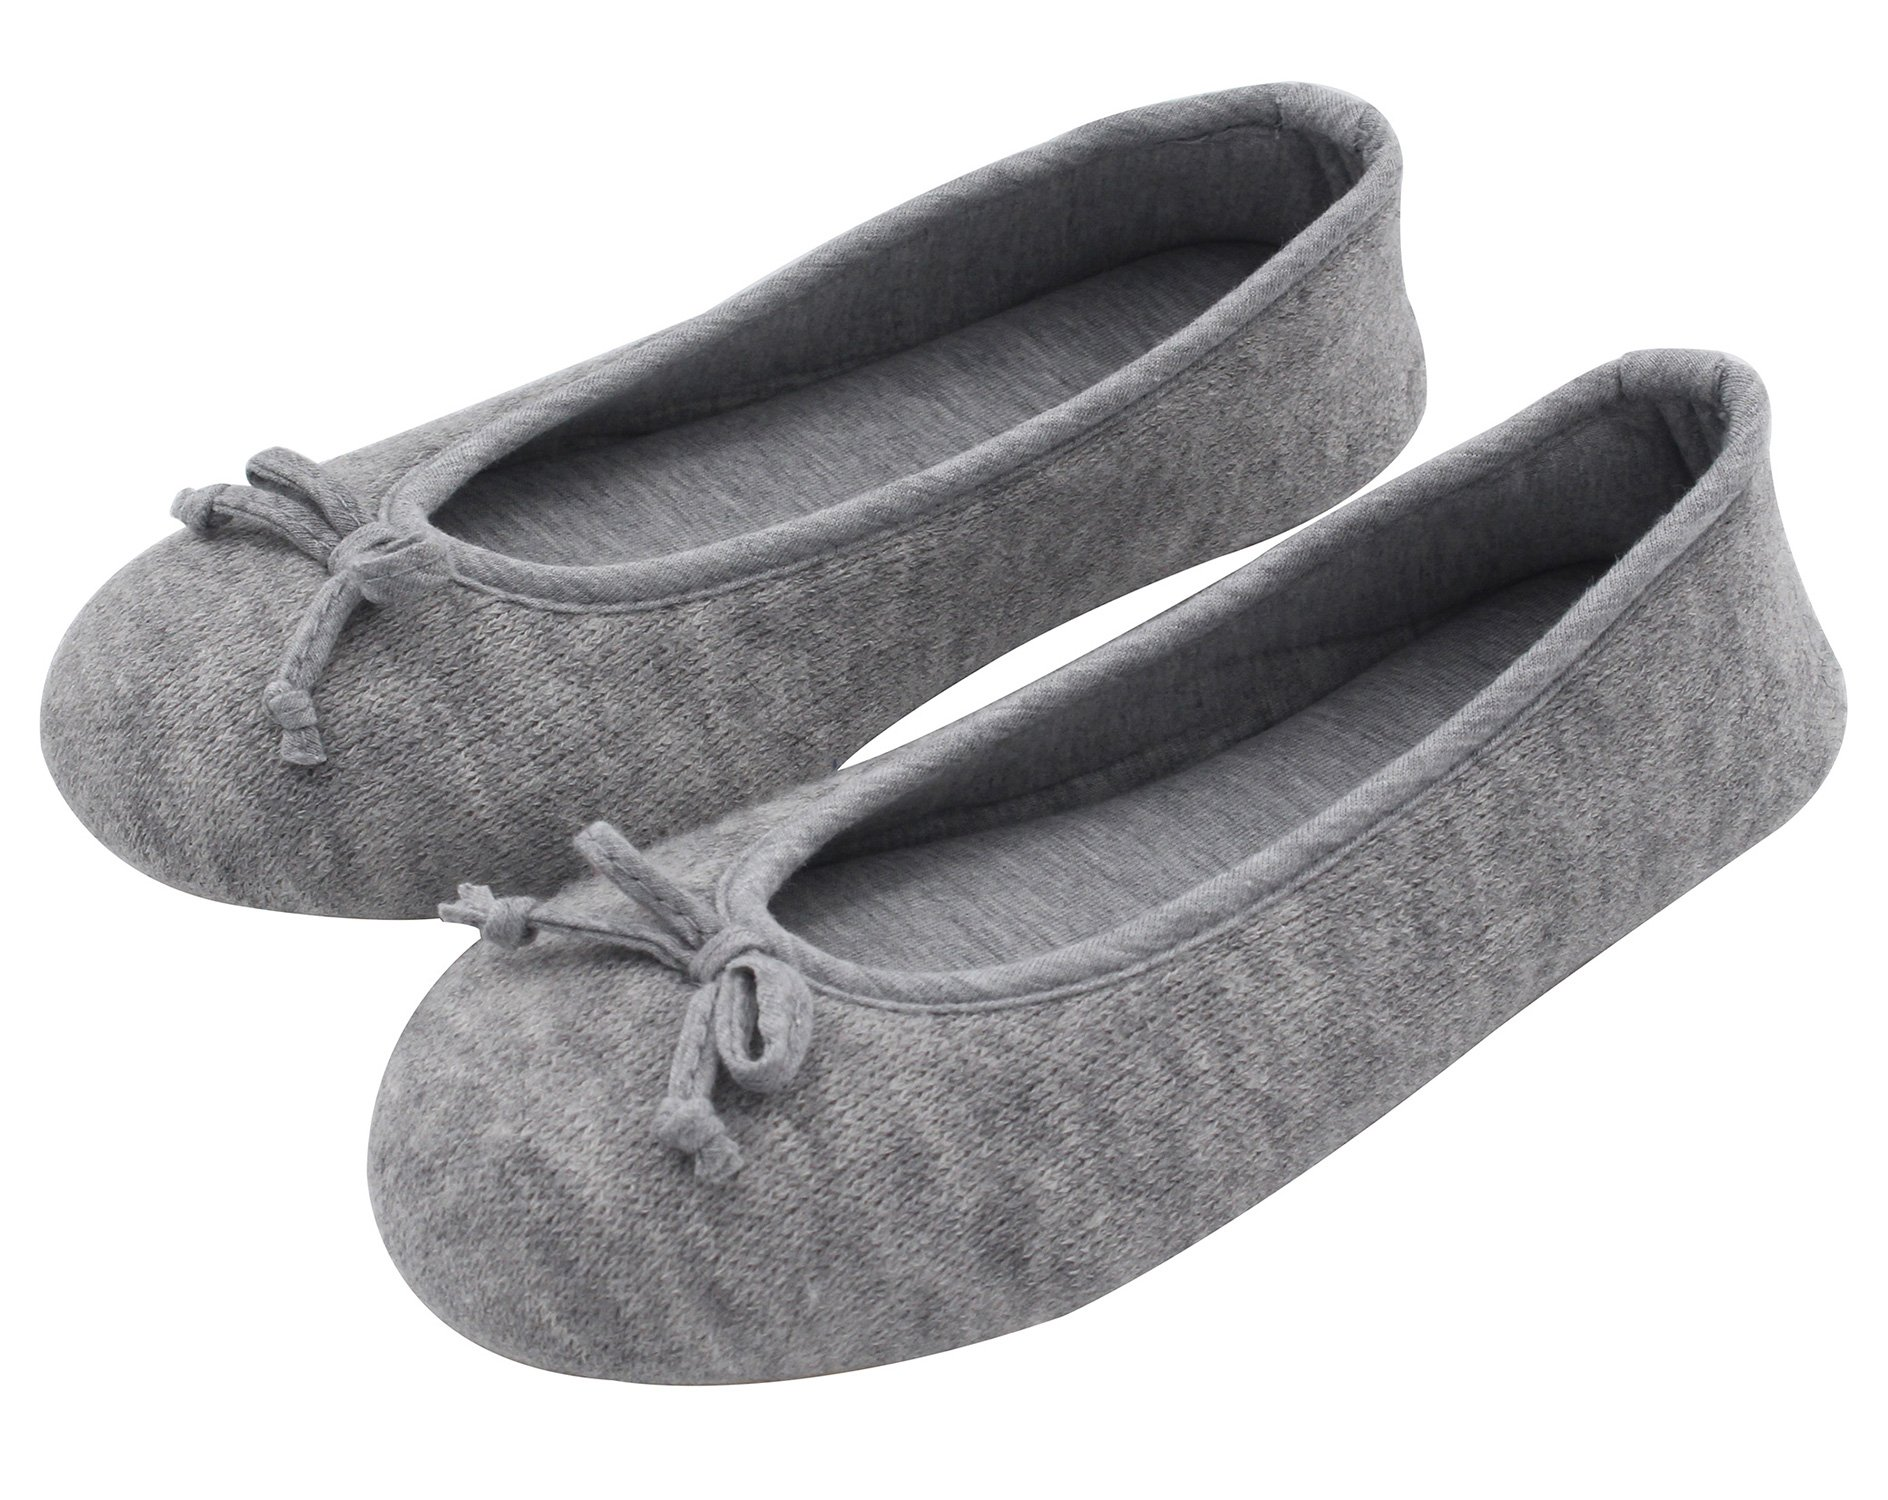 HomeTop Women's Elegant Cashmere Knitted Memory Foam Indoor Ballerina House Slippers/Shoes (Small/5-6 B(M) US, Gray)